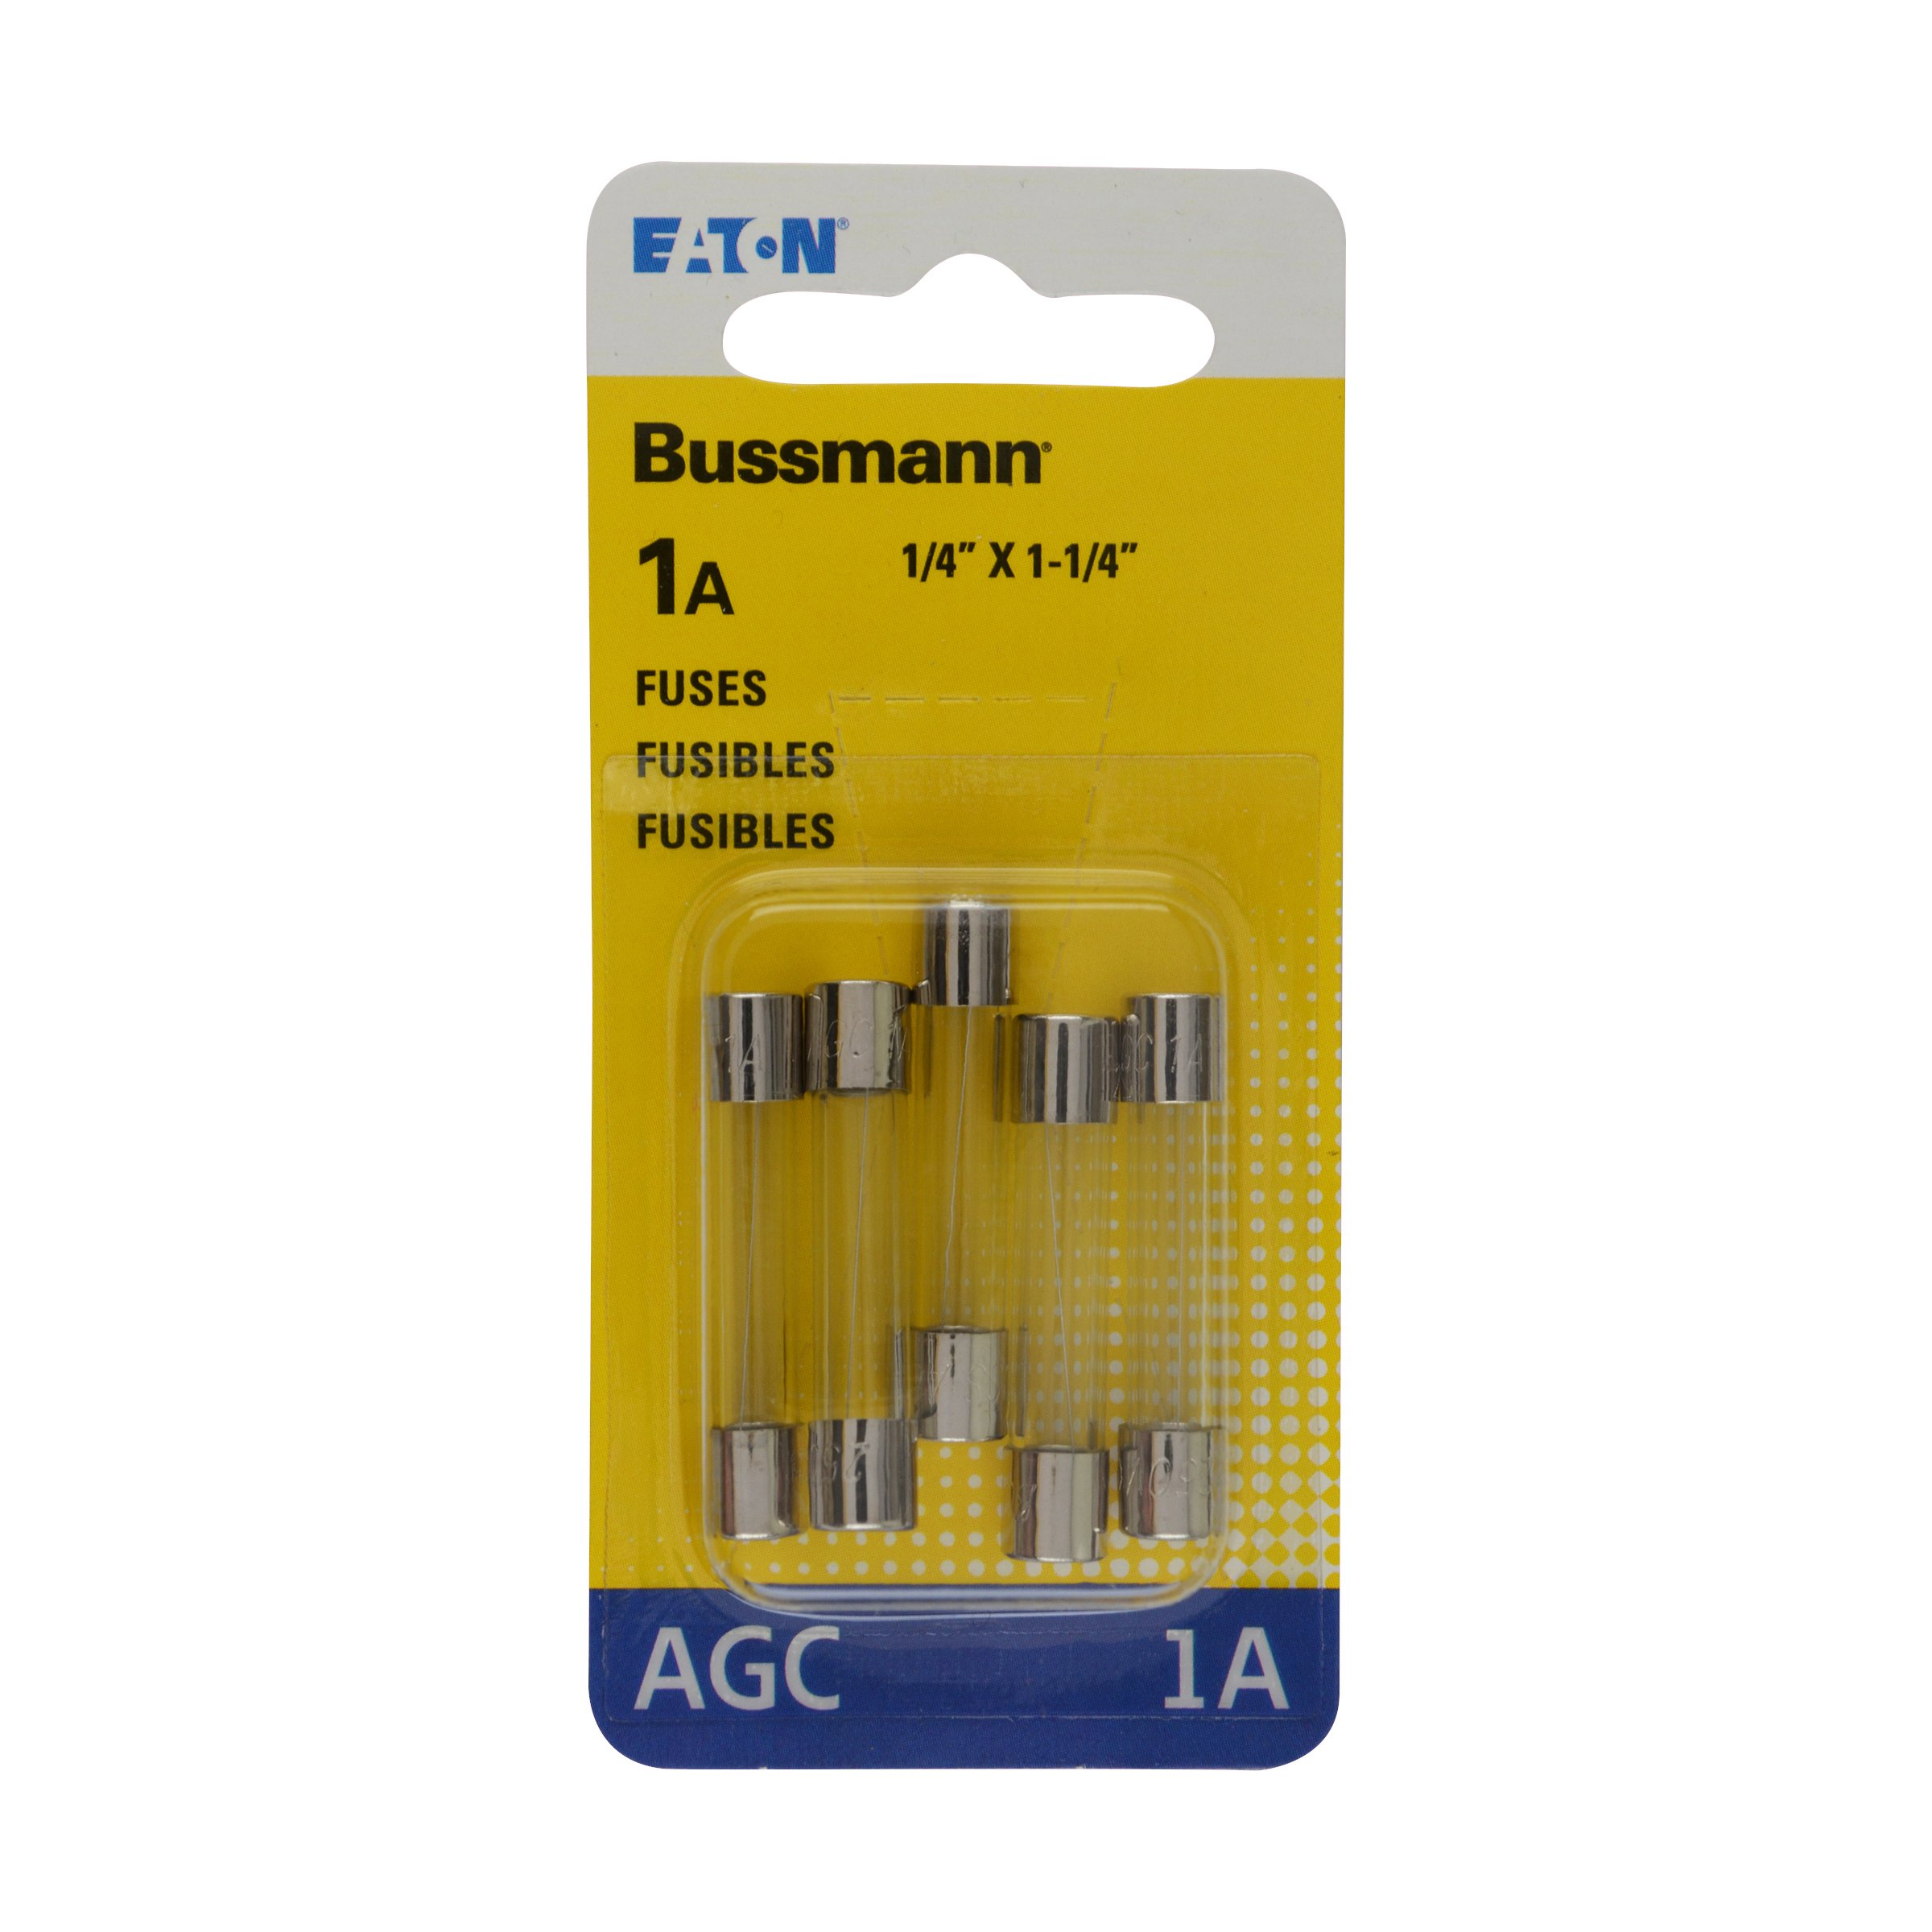 Bussmann BP/AGC-1 1 Amp Fast Acting Glass Tube Fuse, 250V UL Listed Carded, 5-Pack